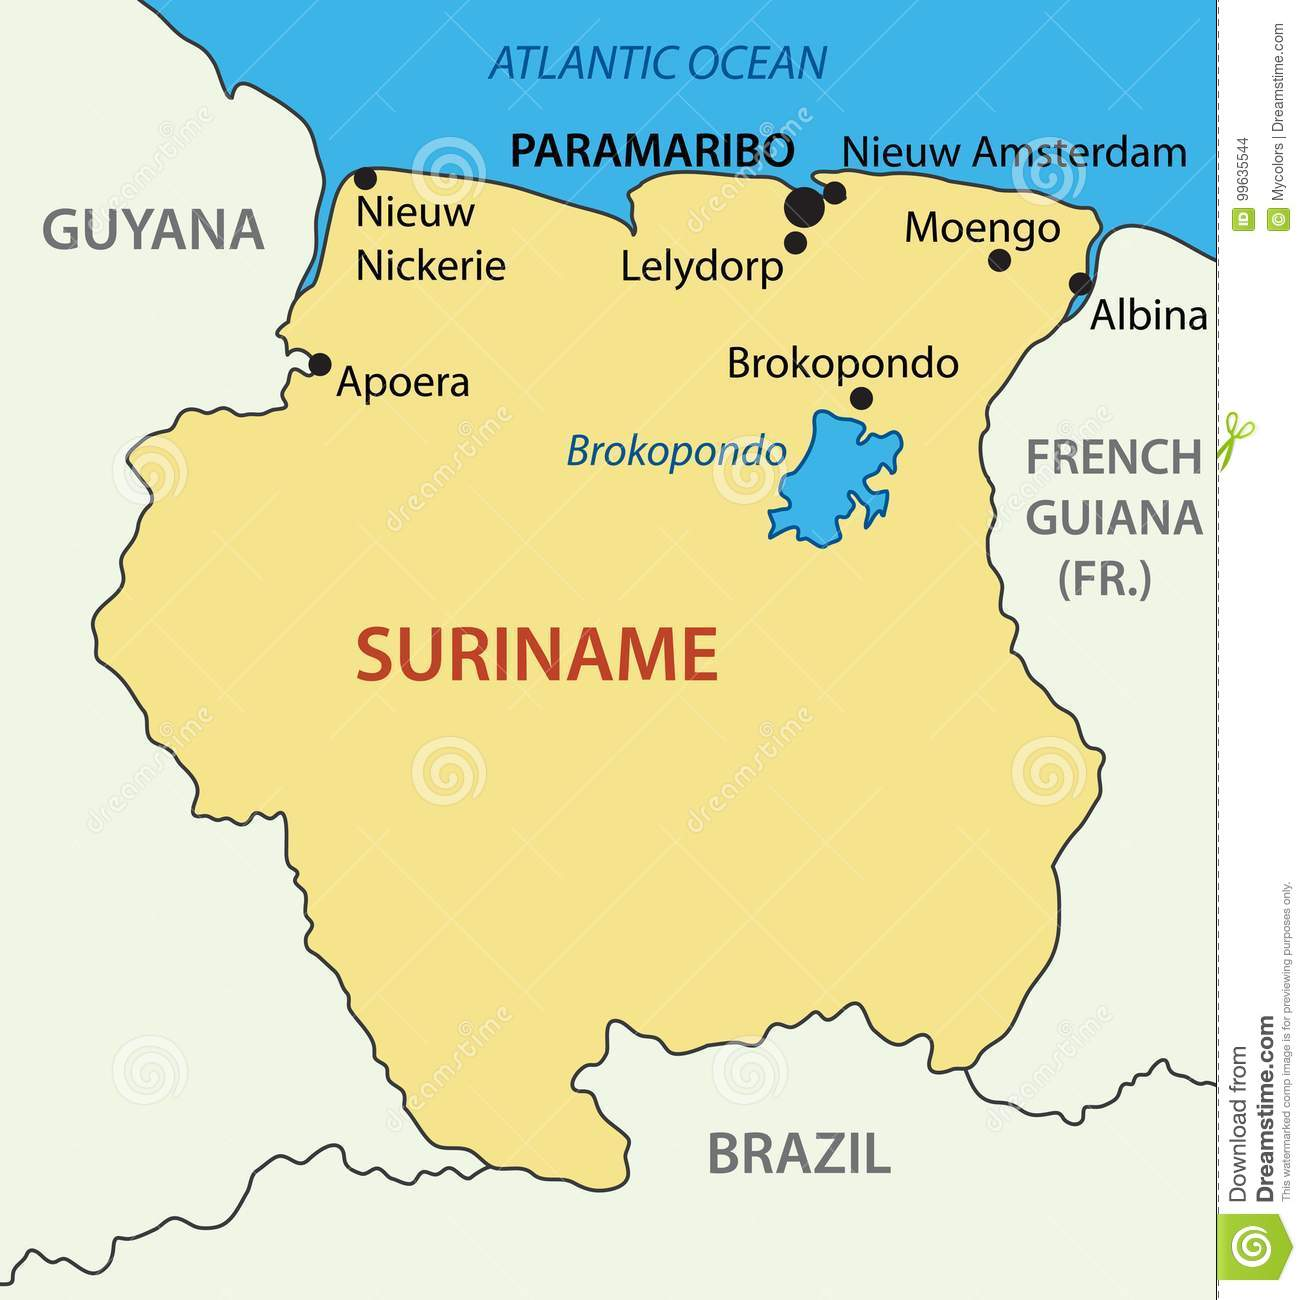 Republic Of Suriname Vector Map Stock Vector Illustration Of